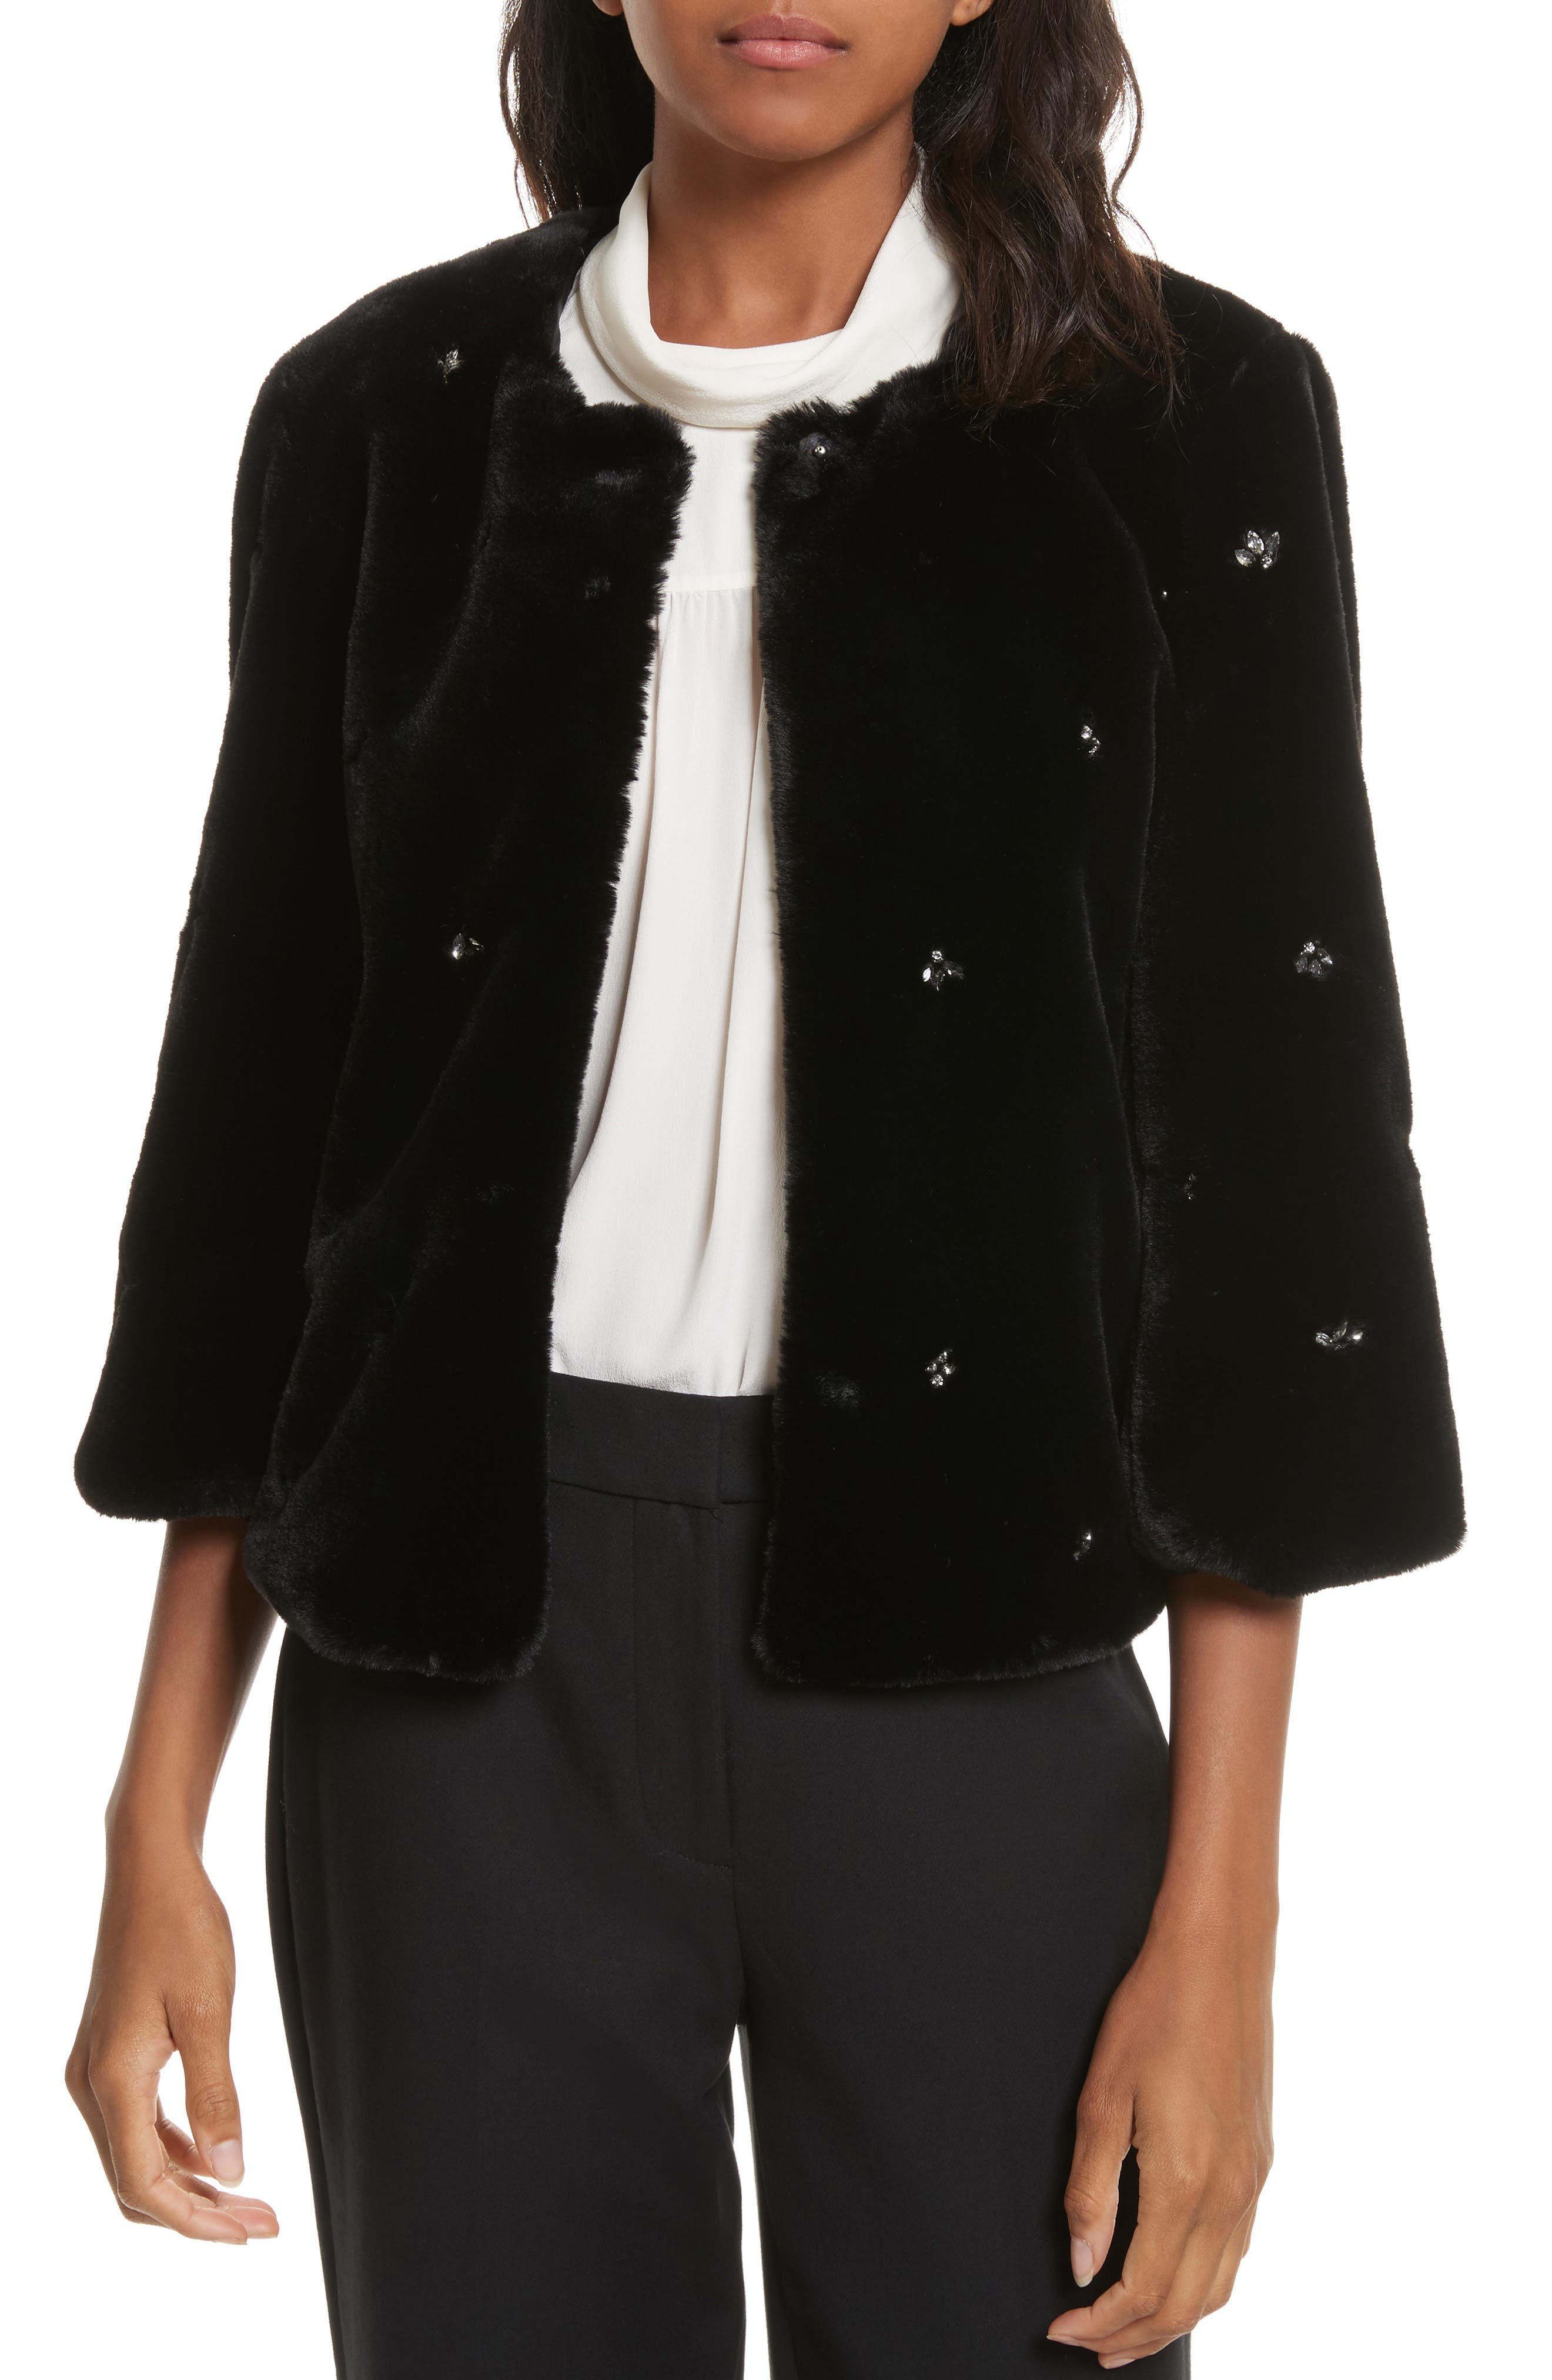 Nayland Embellished Faux Fur Jacket,                         Main,                         color,